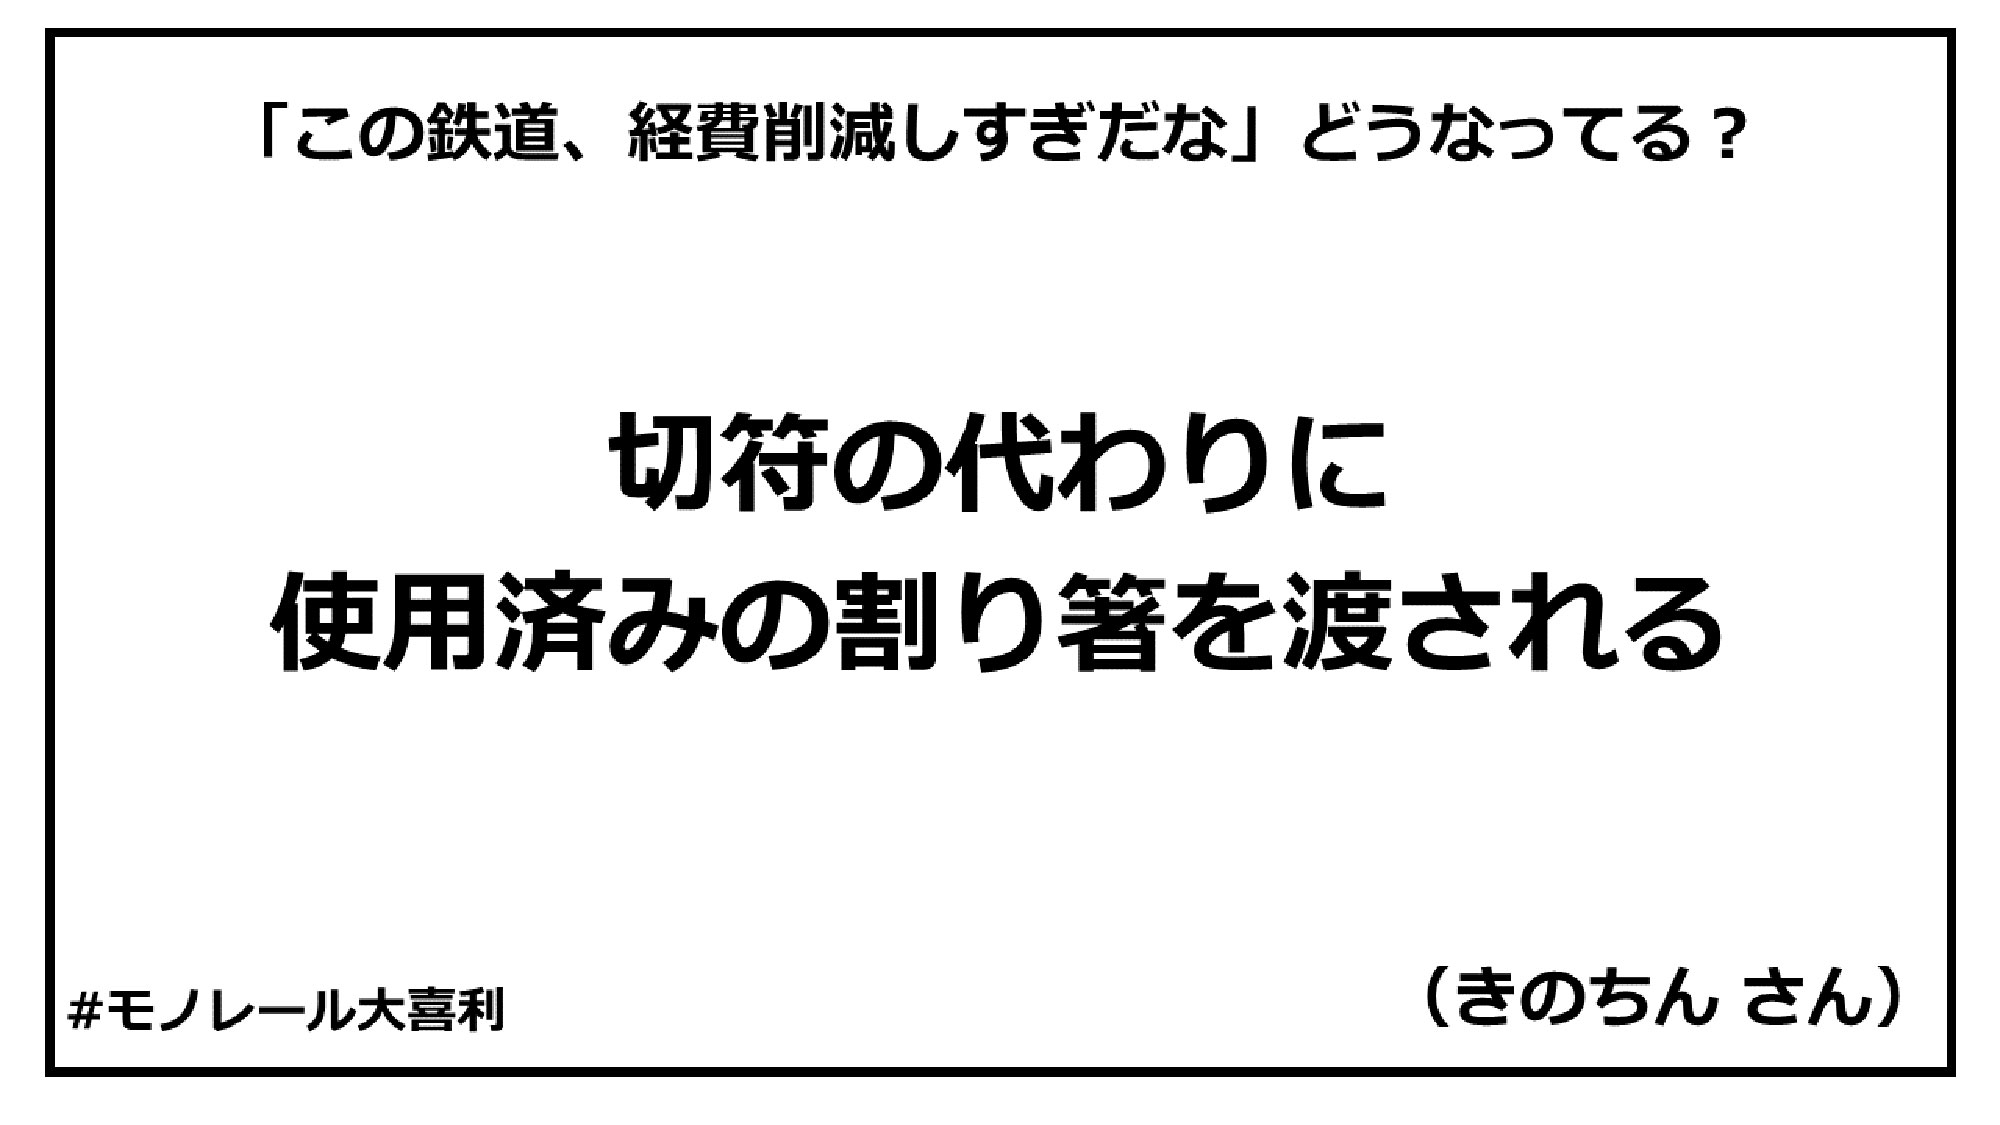 ogiri_answer_28_4.jpg